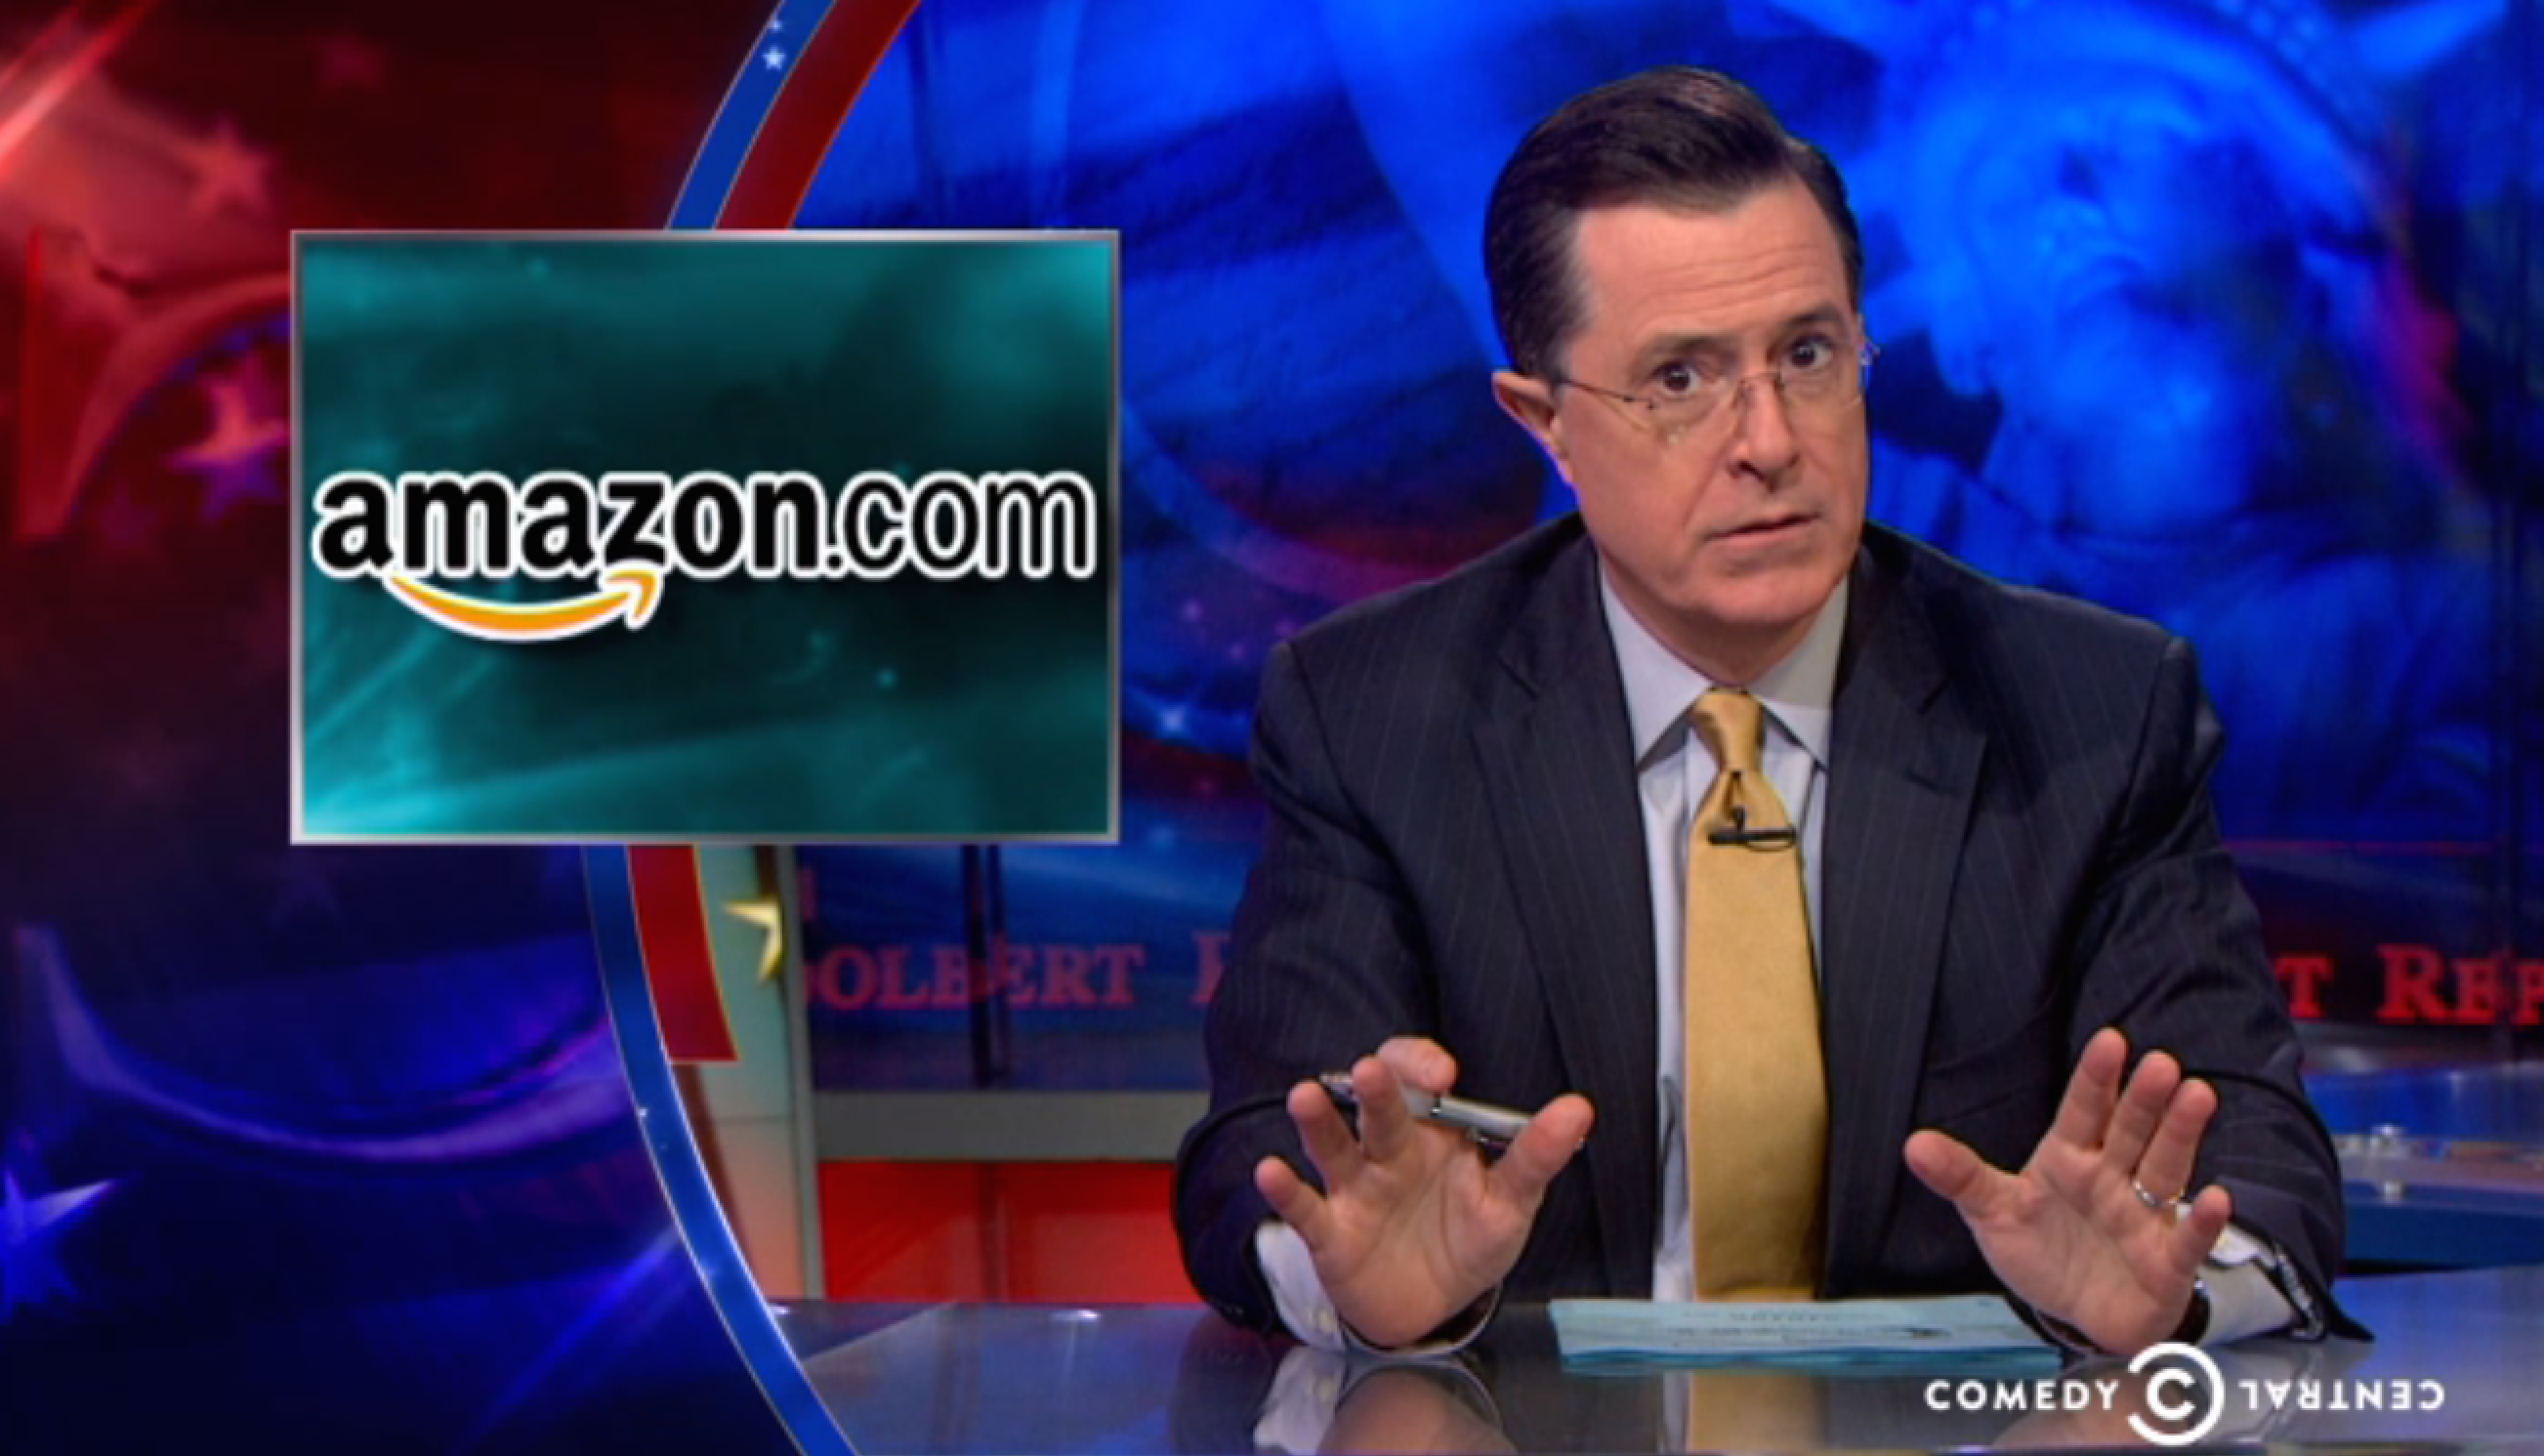 Colbert Reads Photographers' Minds And Slams Amazon Over Insane Patent